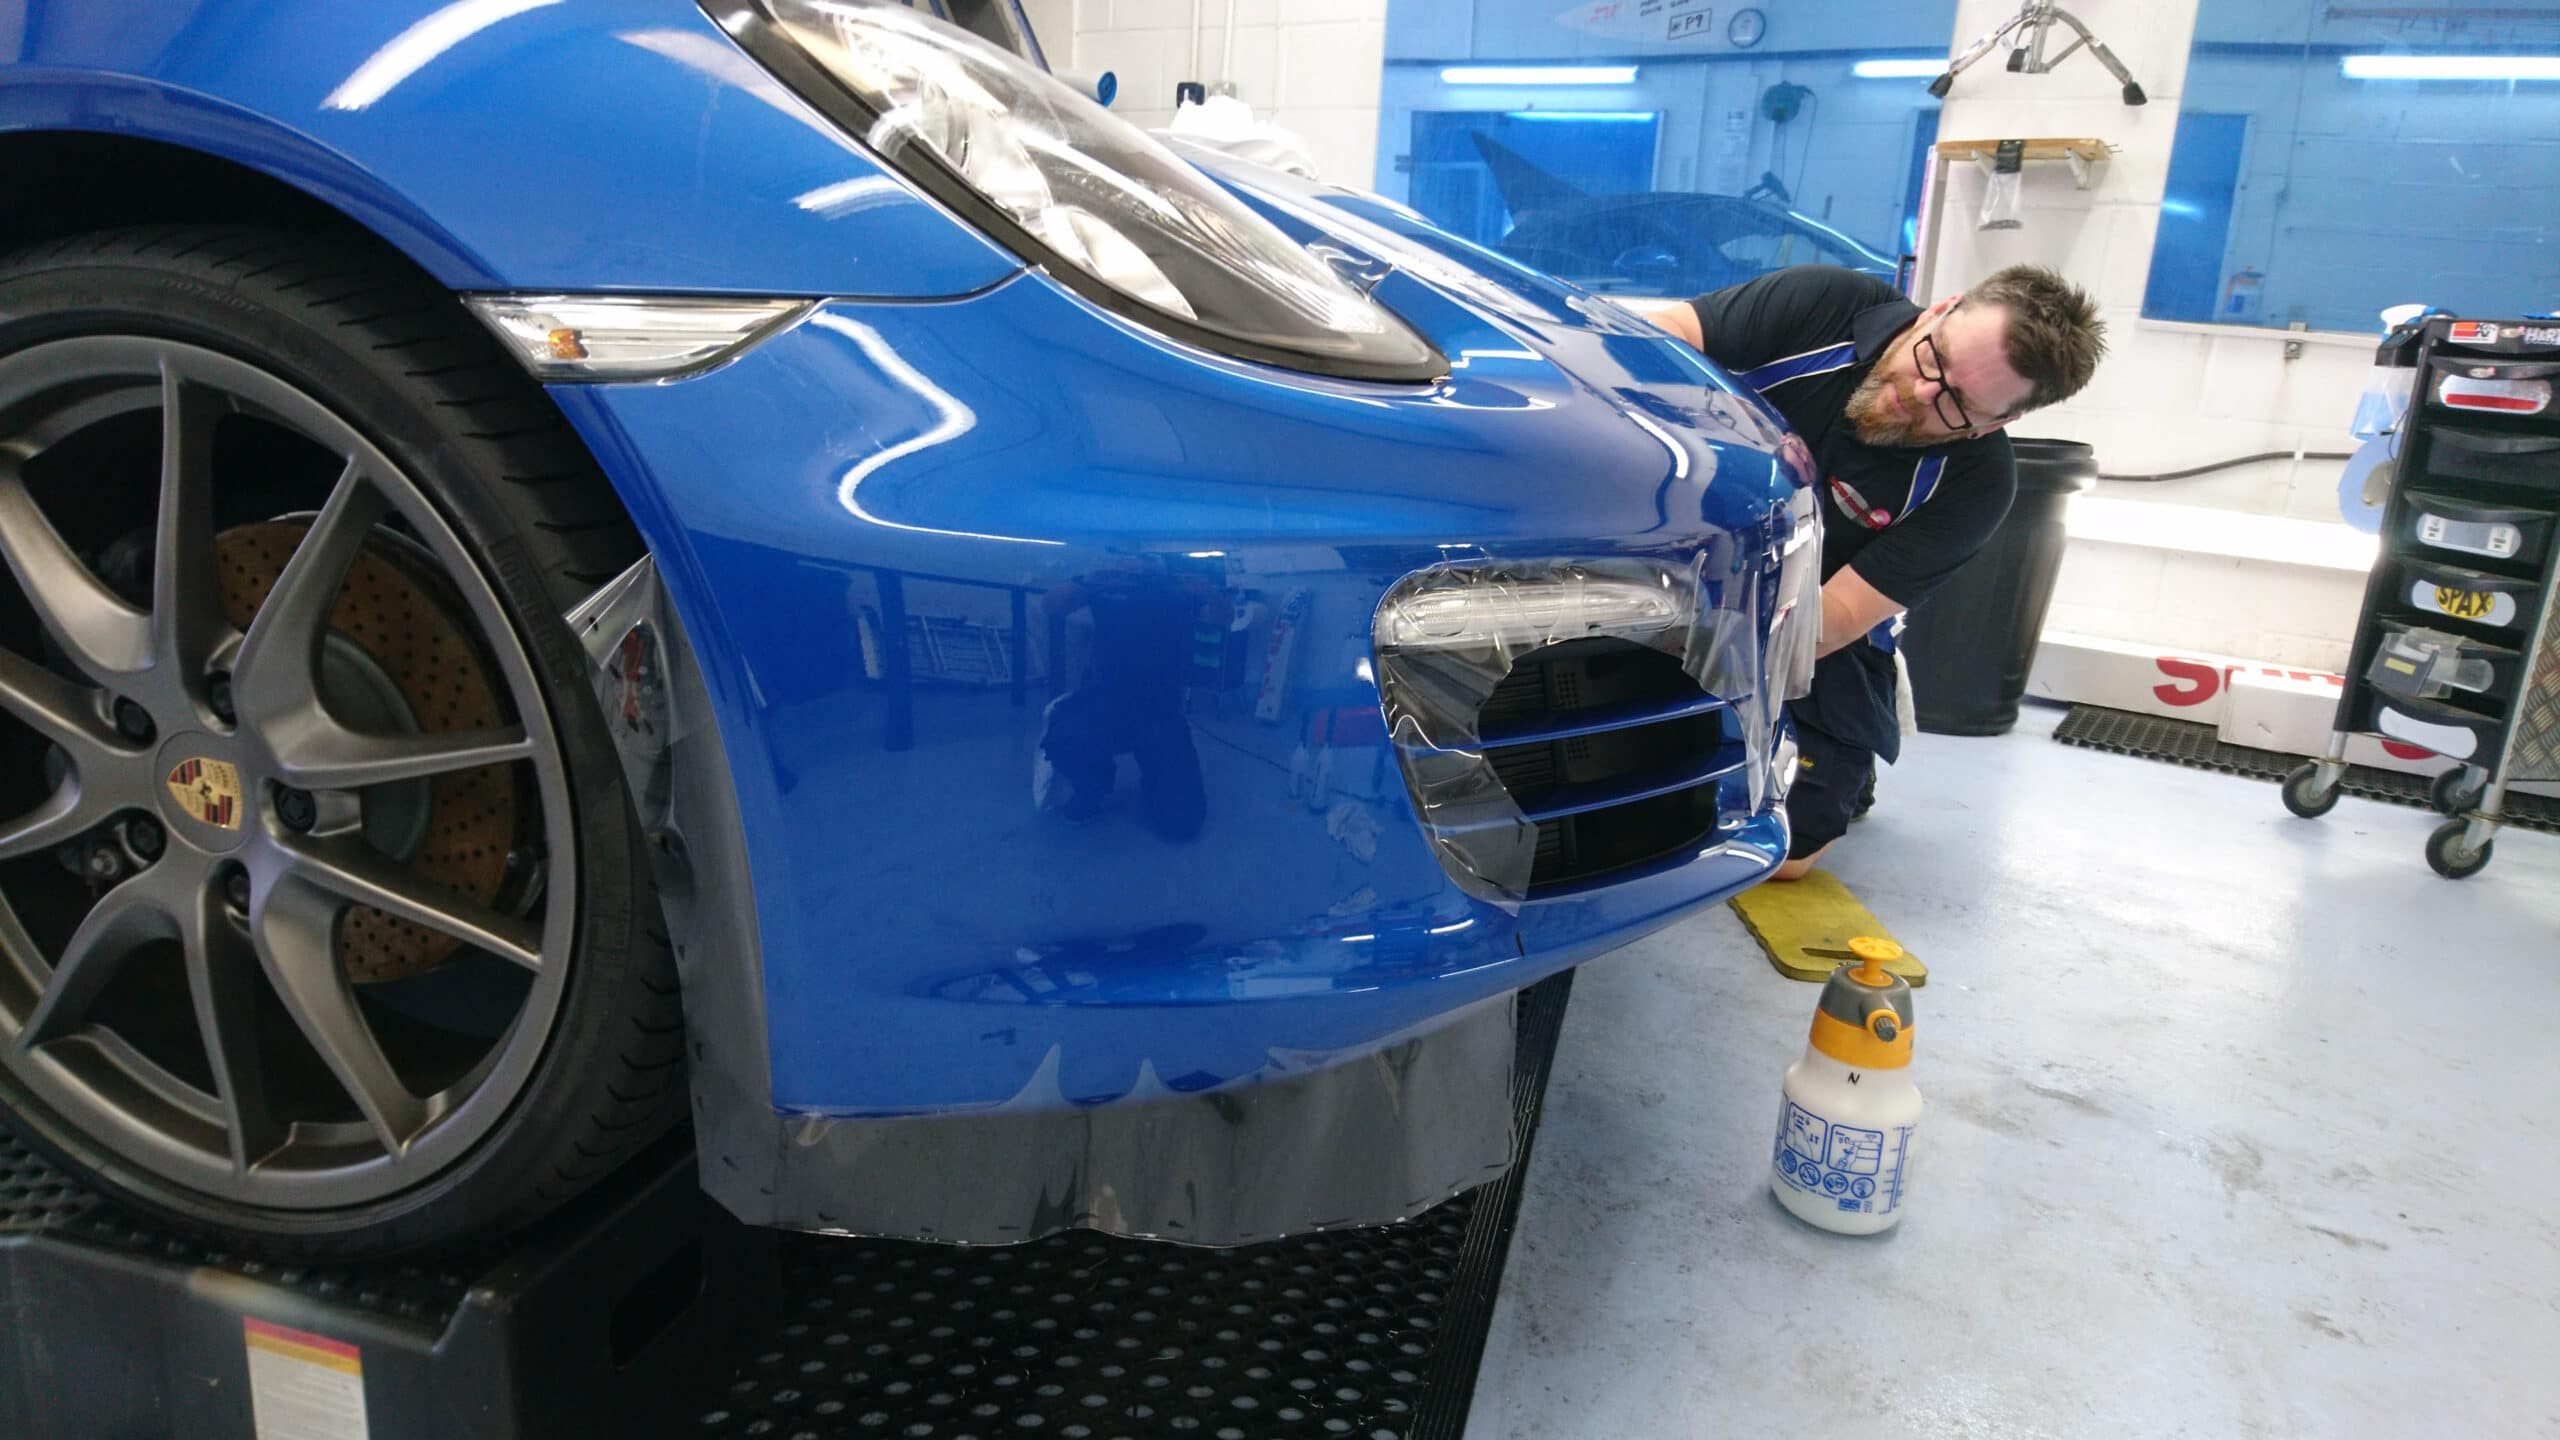 Paint Protection Film being applied